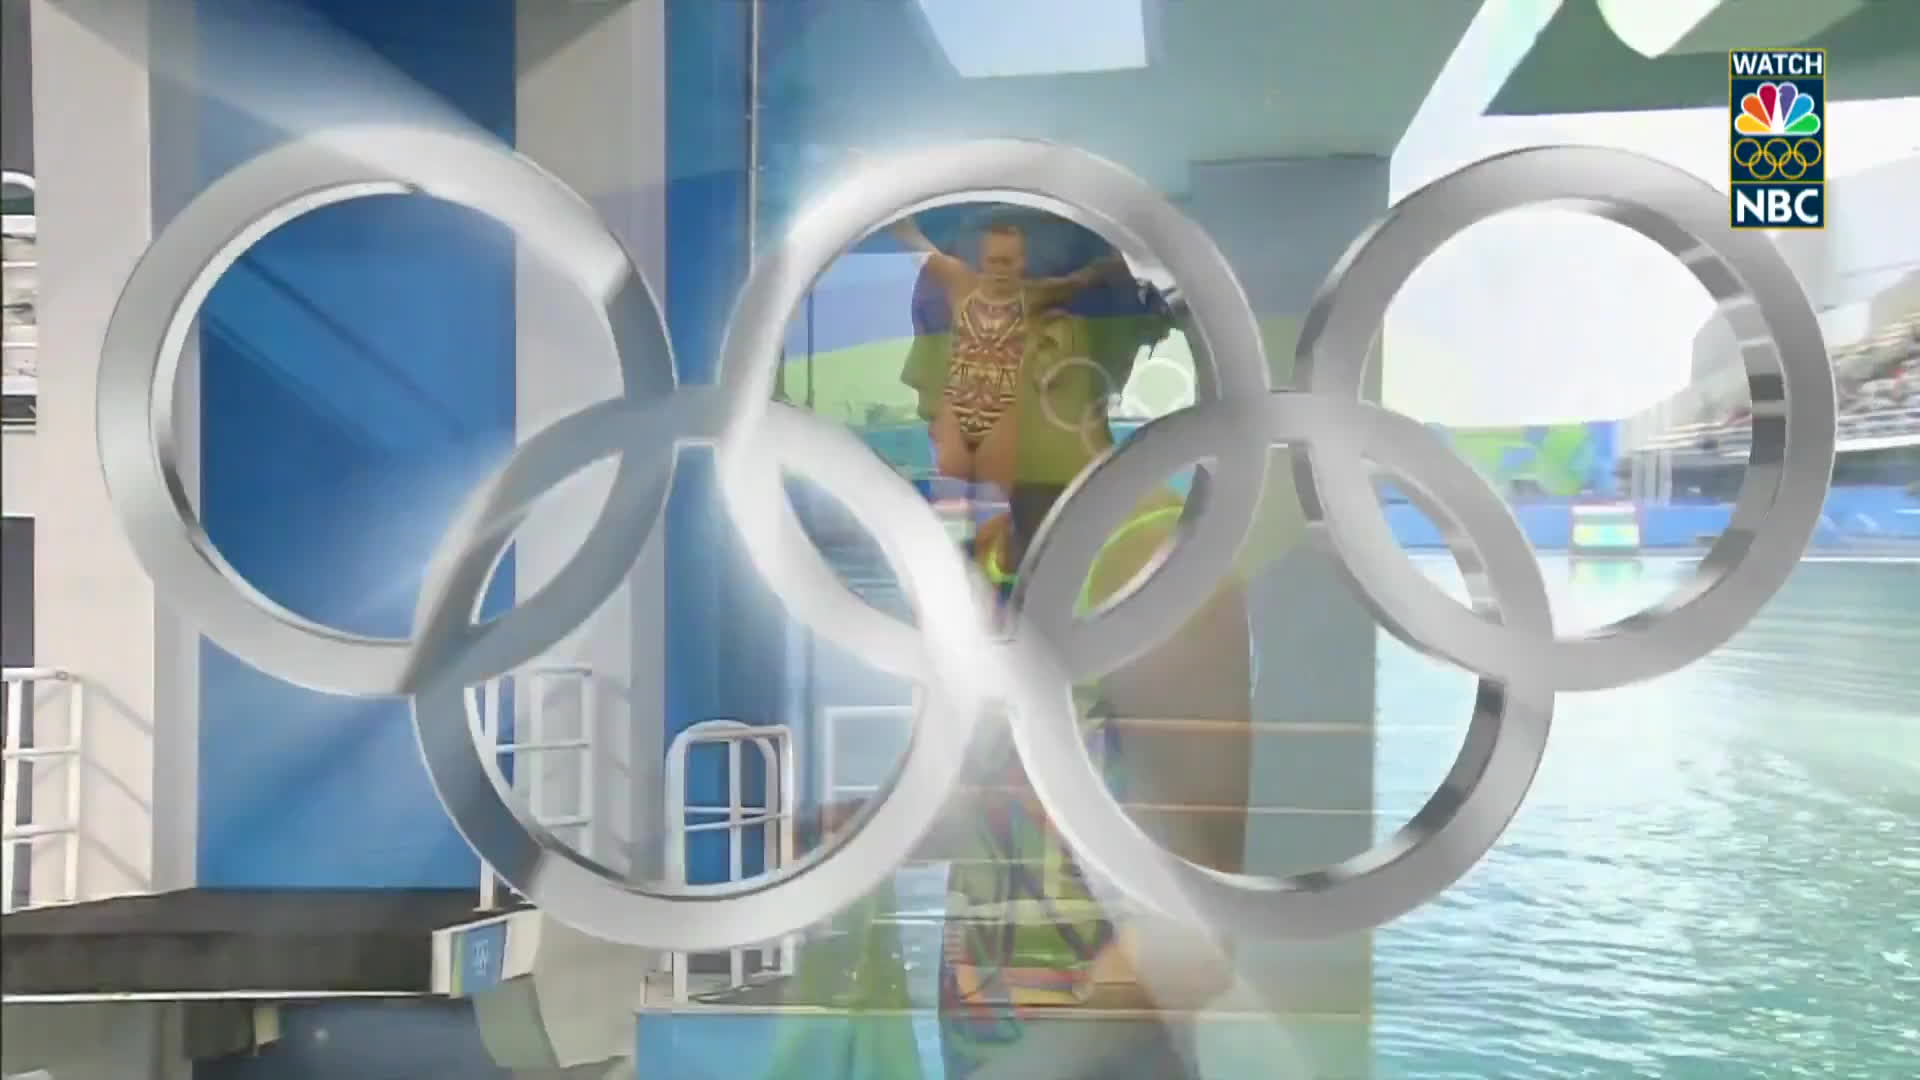 diving, nbc sports, olymgifs, Russian diver receives a zero for elaborate back flop GIFs